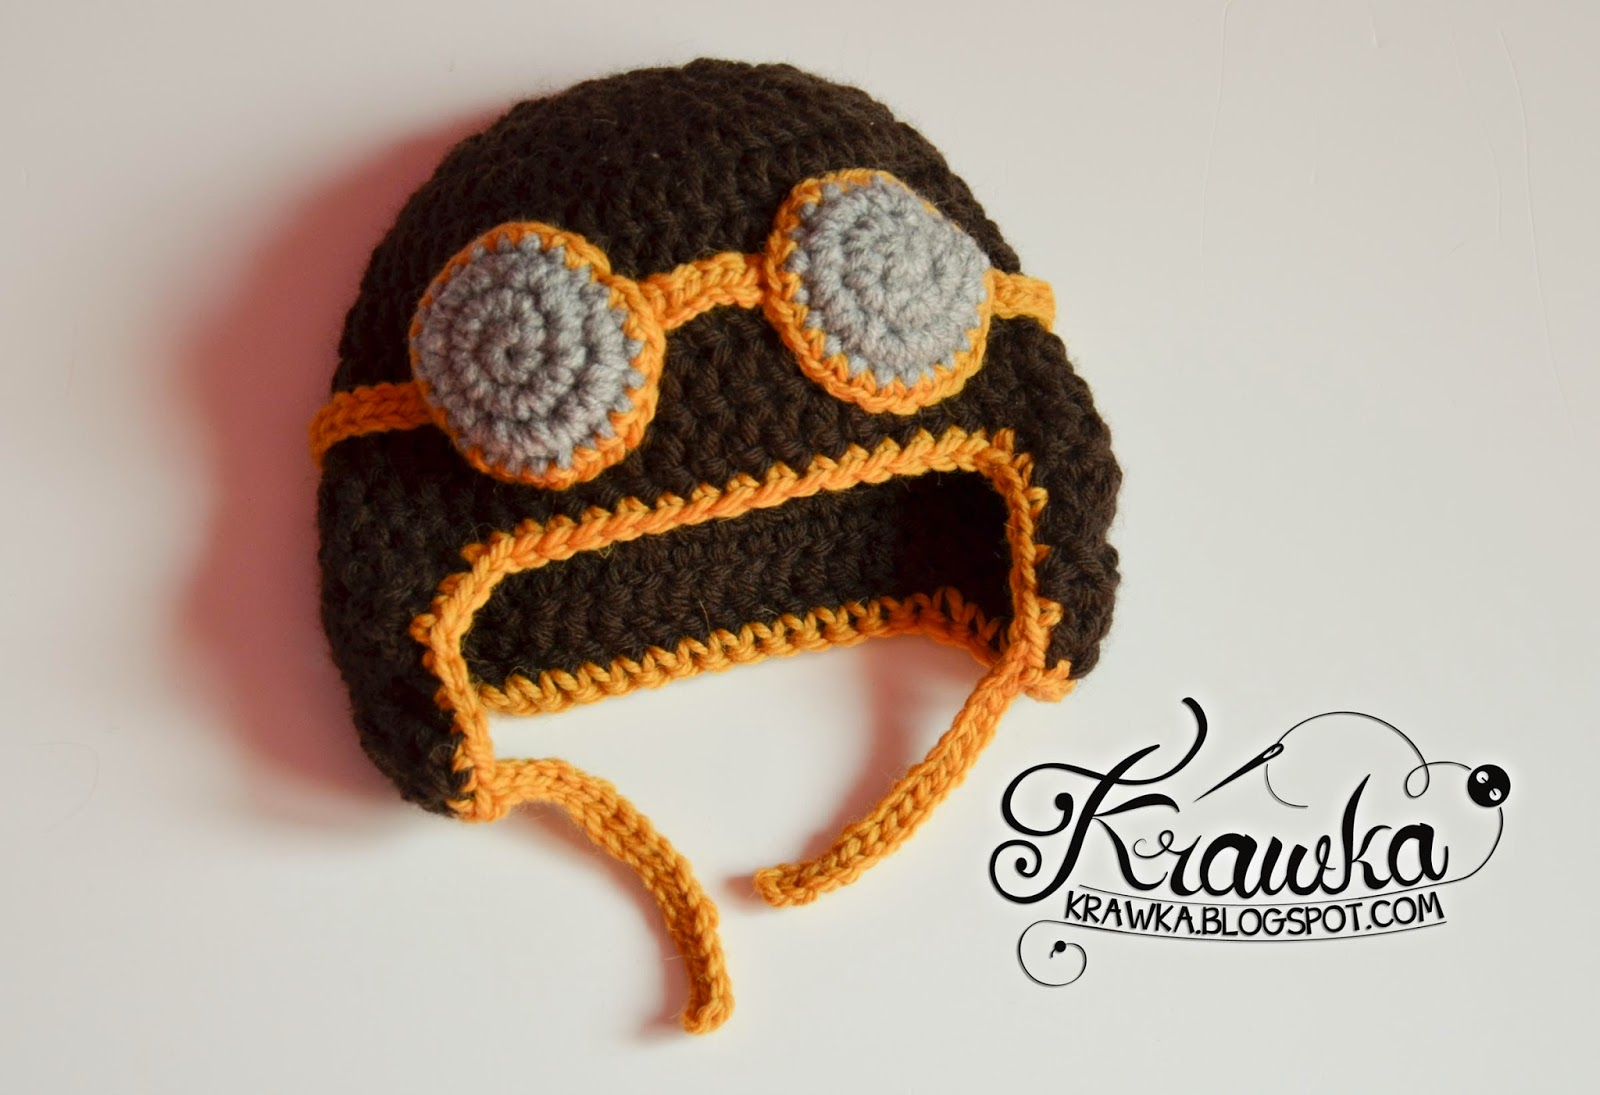 Krawka: Crochet aviator newborn hat. Props for a photo session of a newborn baby.